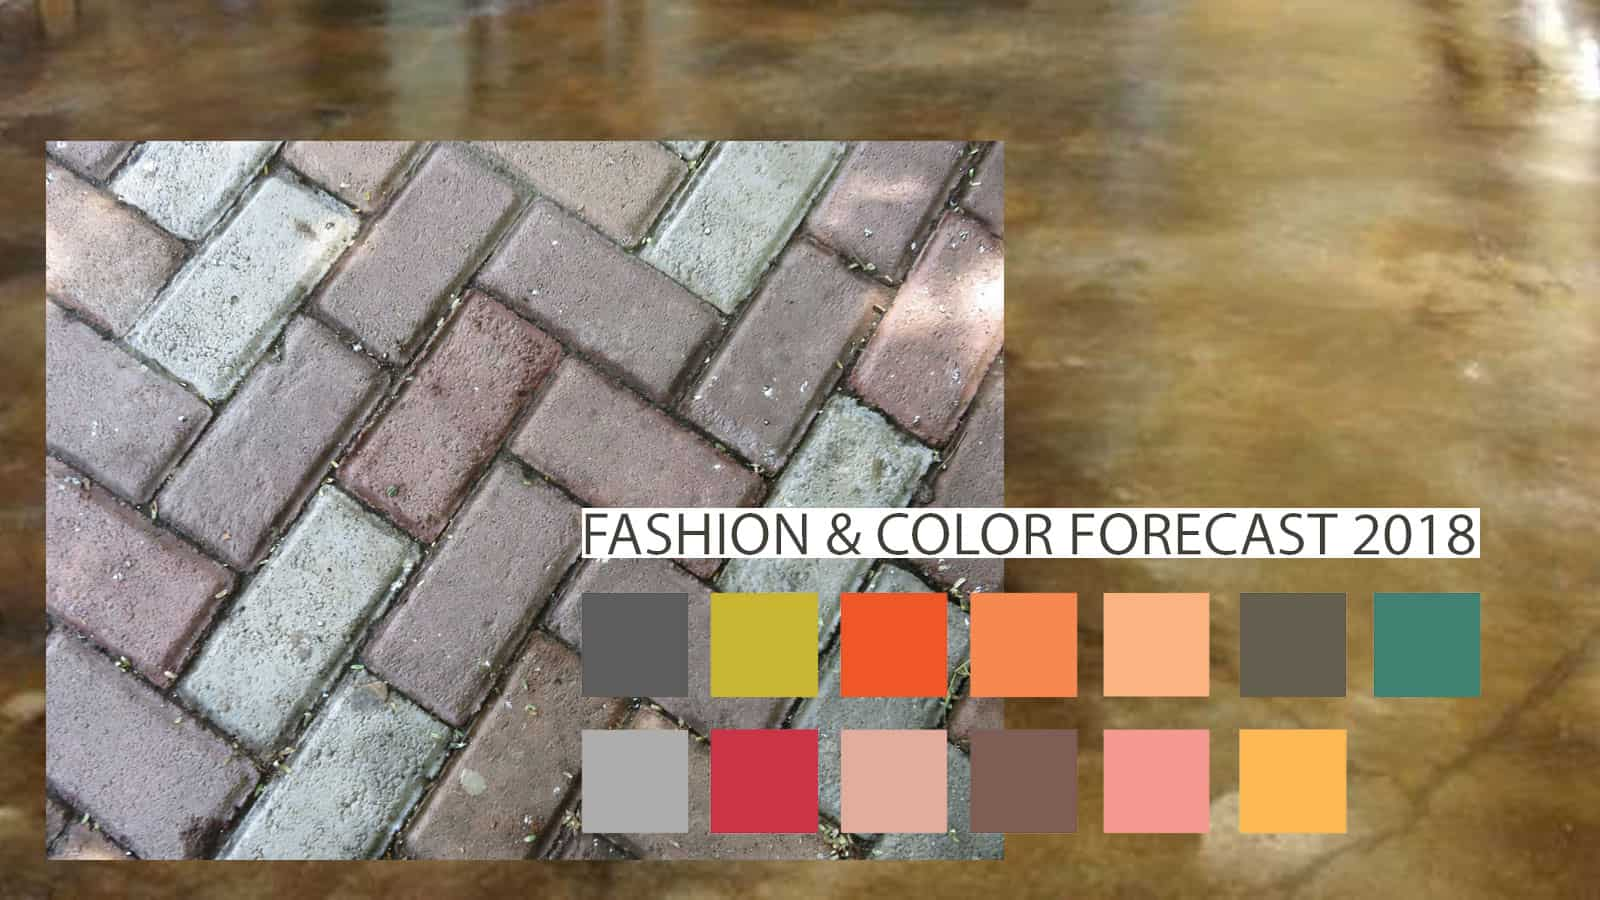 3Rs Recommends Fashion Colors for Concrete and Block